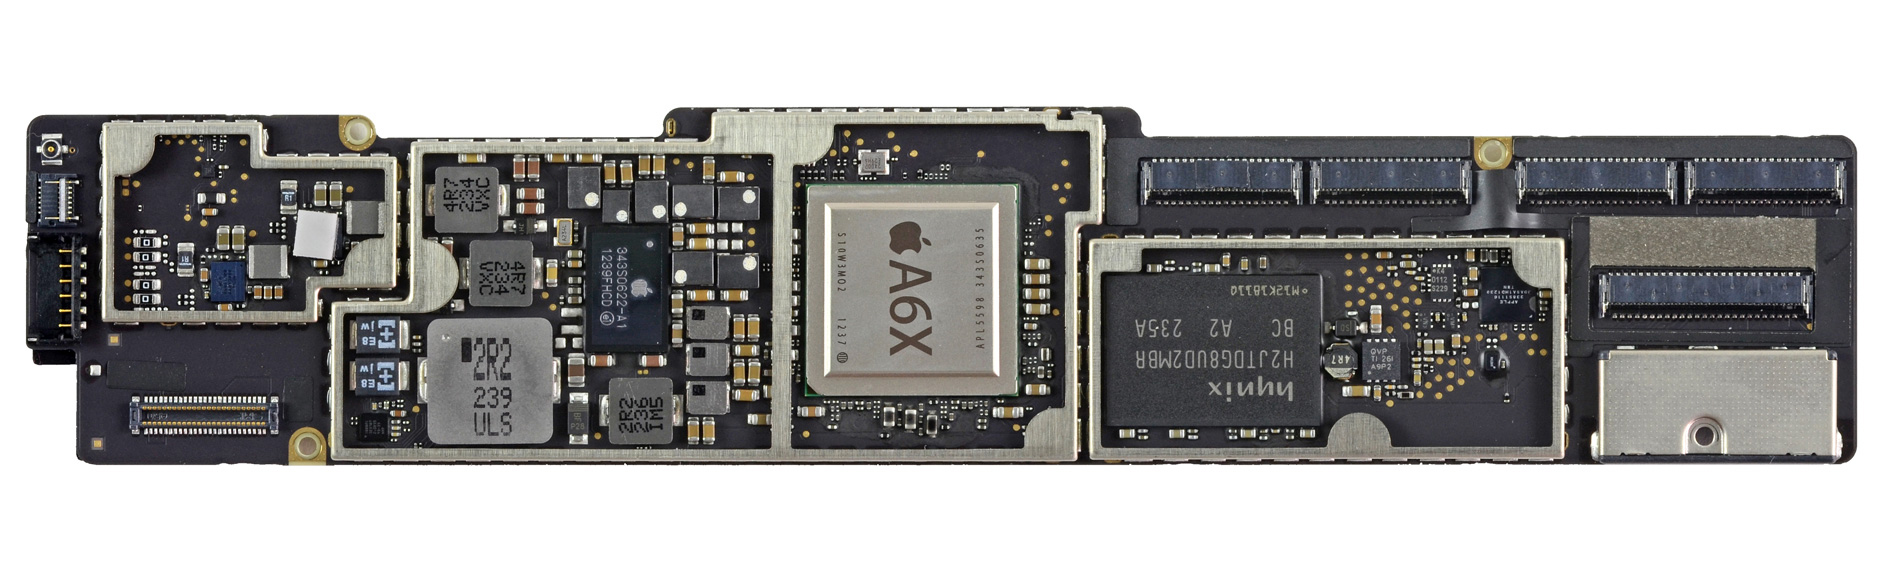 Ipad Motherboard Repairs And Soldering In Nyc Ensil Electronic Circuit Board Repair Electronics